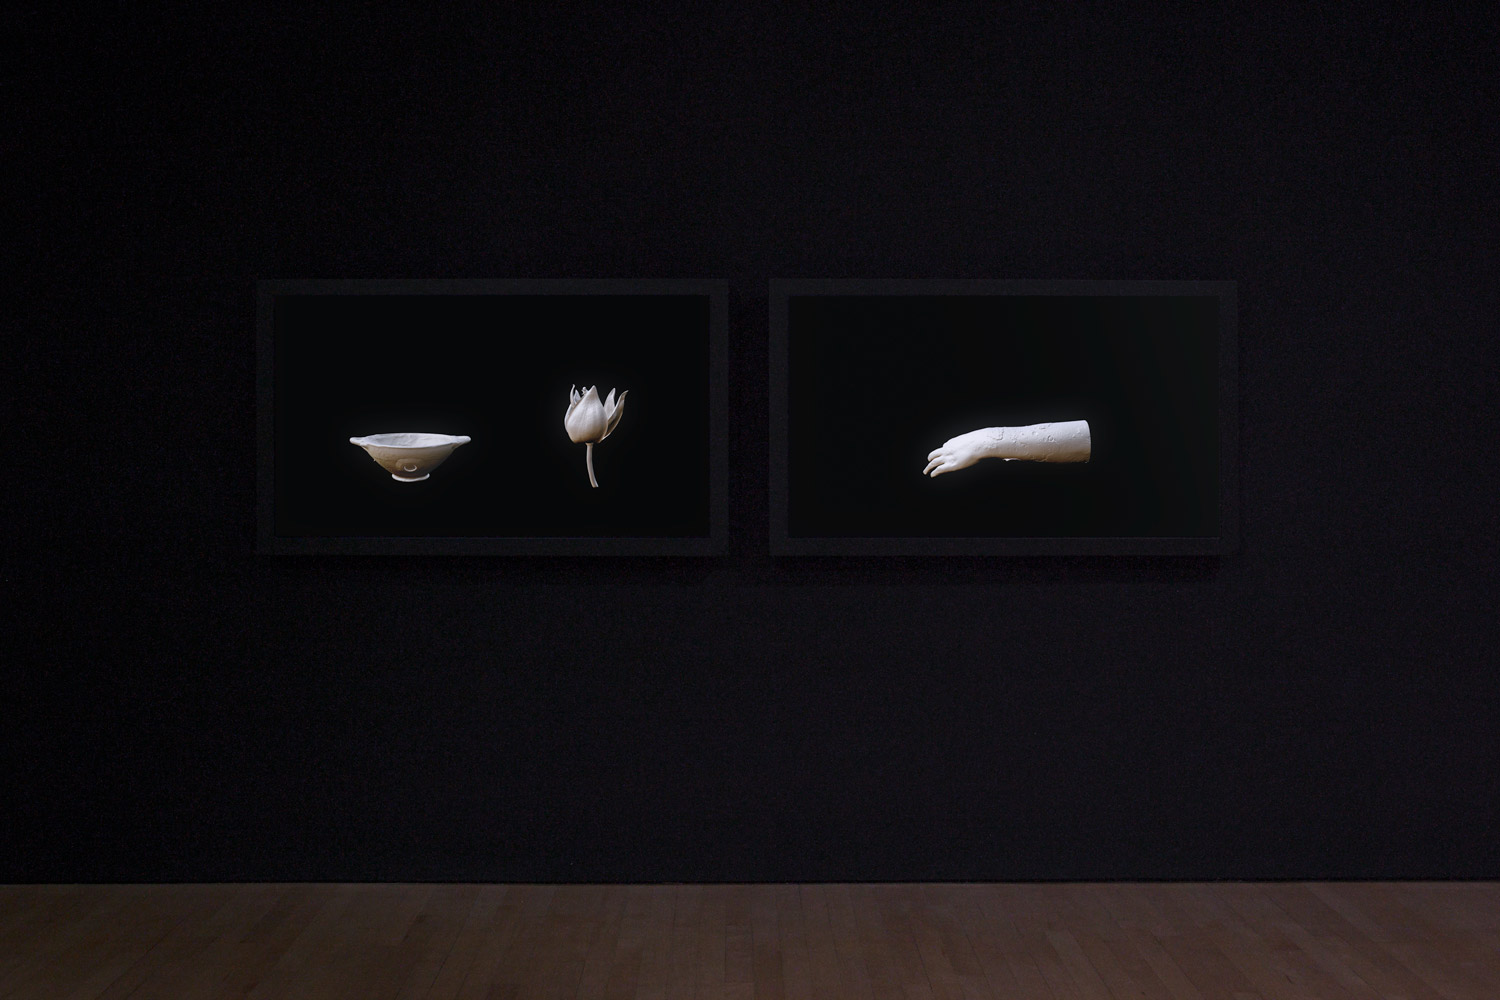 Andrea Zucchini, Participation Mystique, 2016. CGI animations of scanned and digitally altered artefacts.